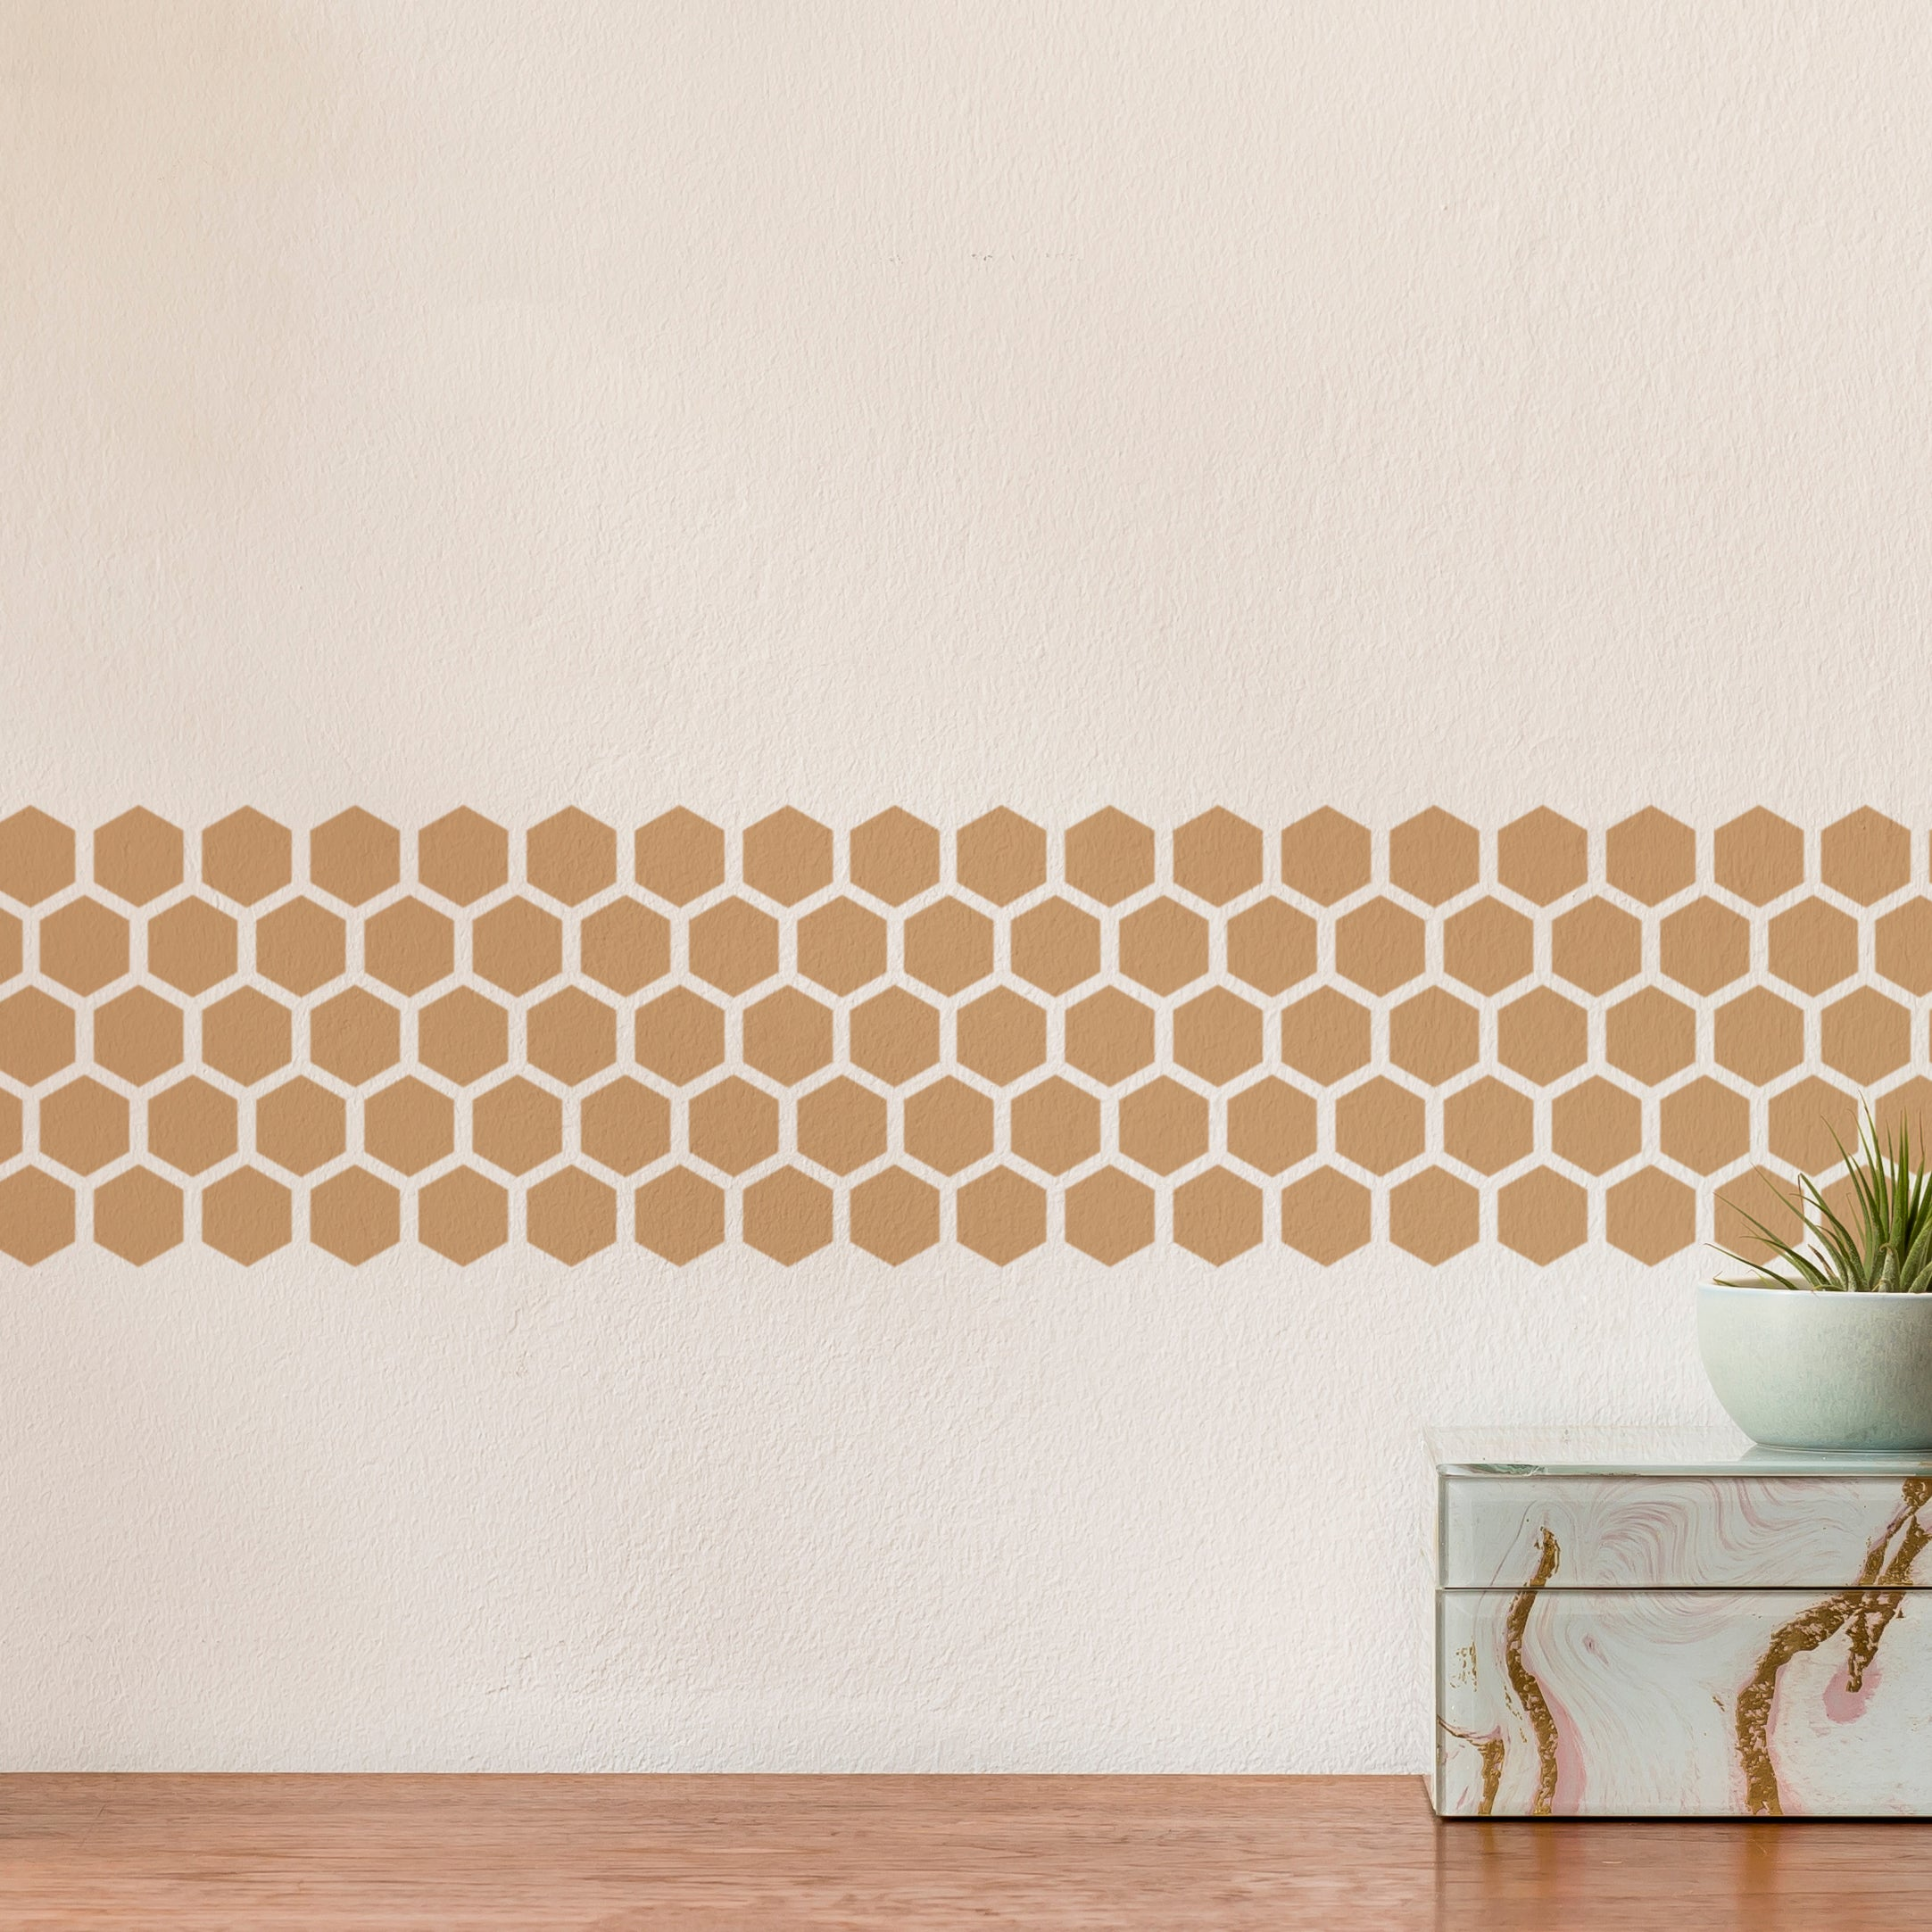 CraftStar Honeycomb Border Stencil